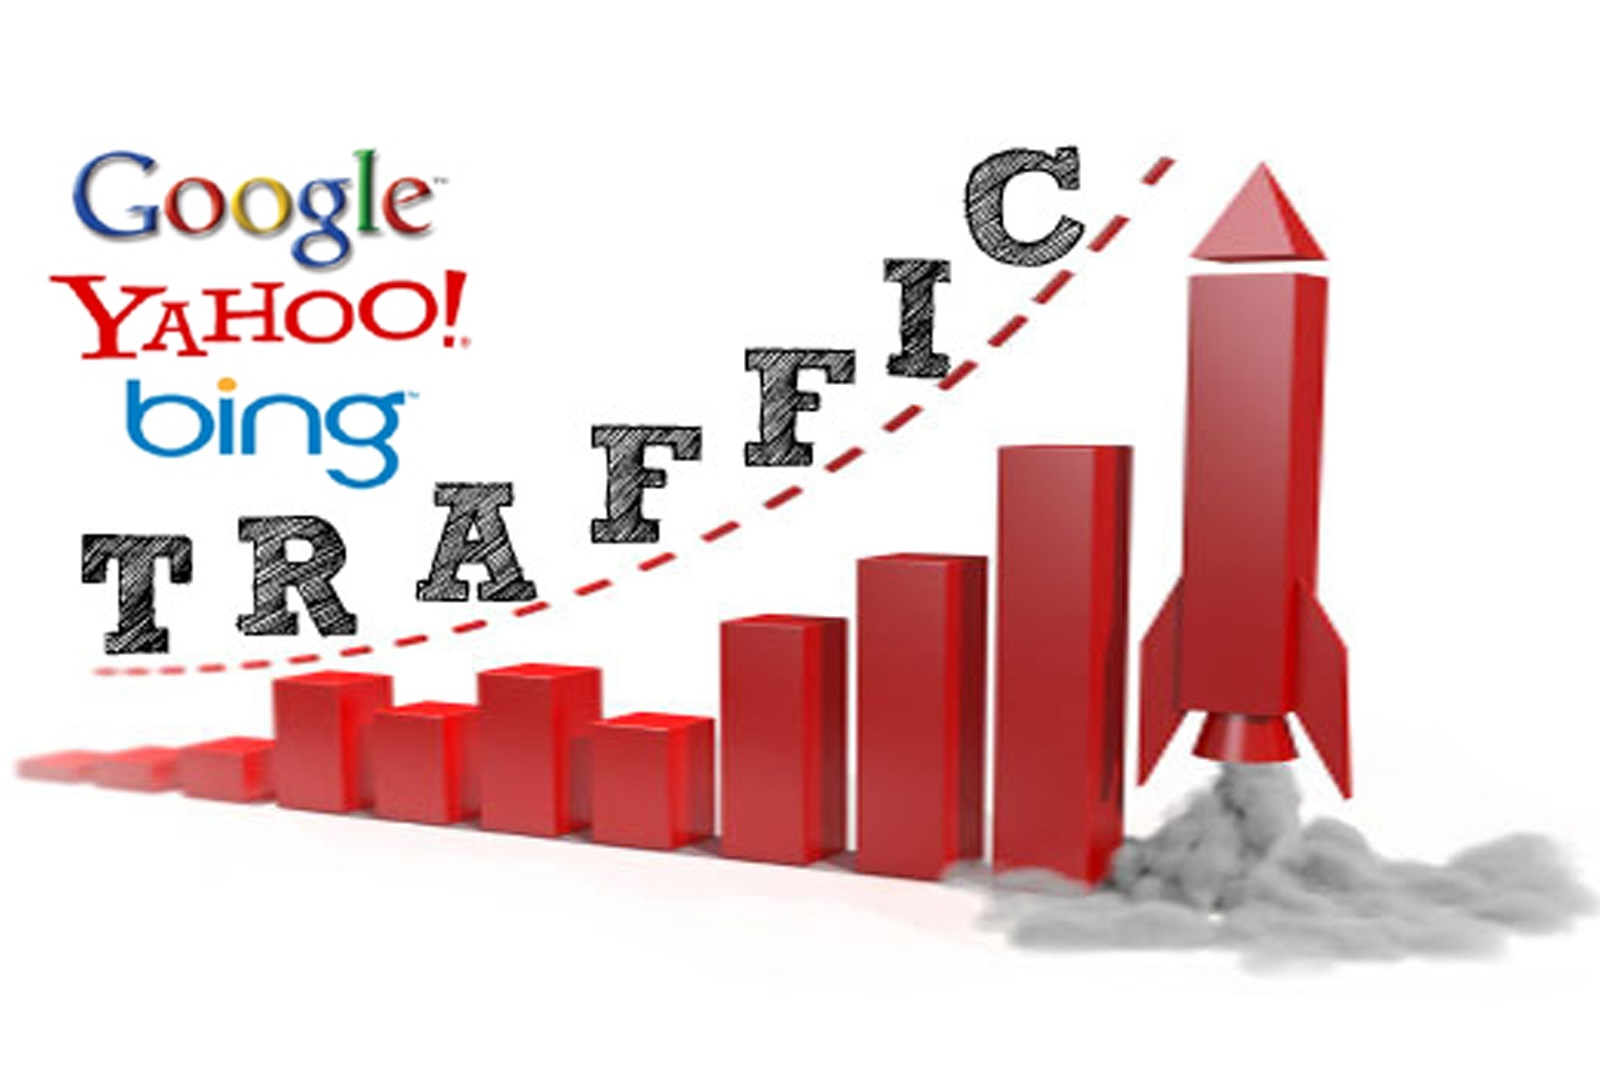 50000 Real mostly usa Low bounce rate traffic